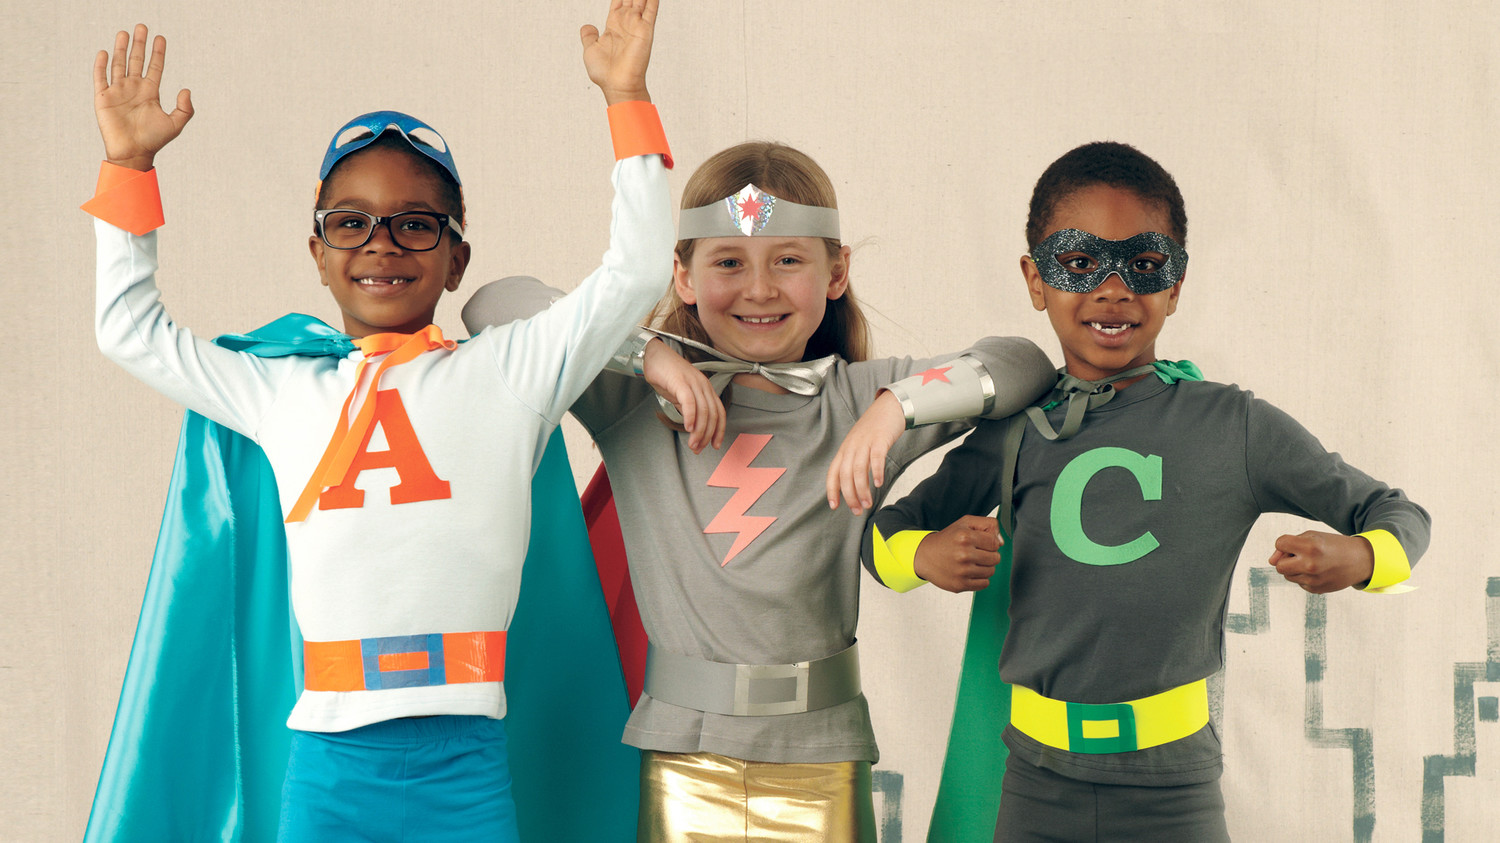 sc 1 st  Martha Stewart & 8 Easy Costumes Kids Can Make Themselves | Martha Stewart